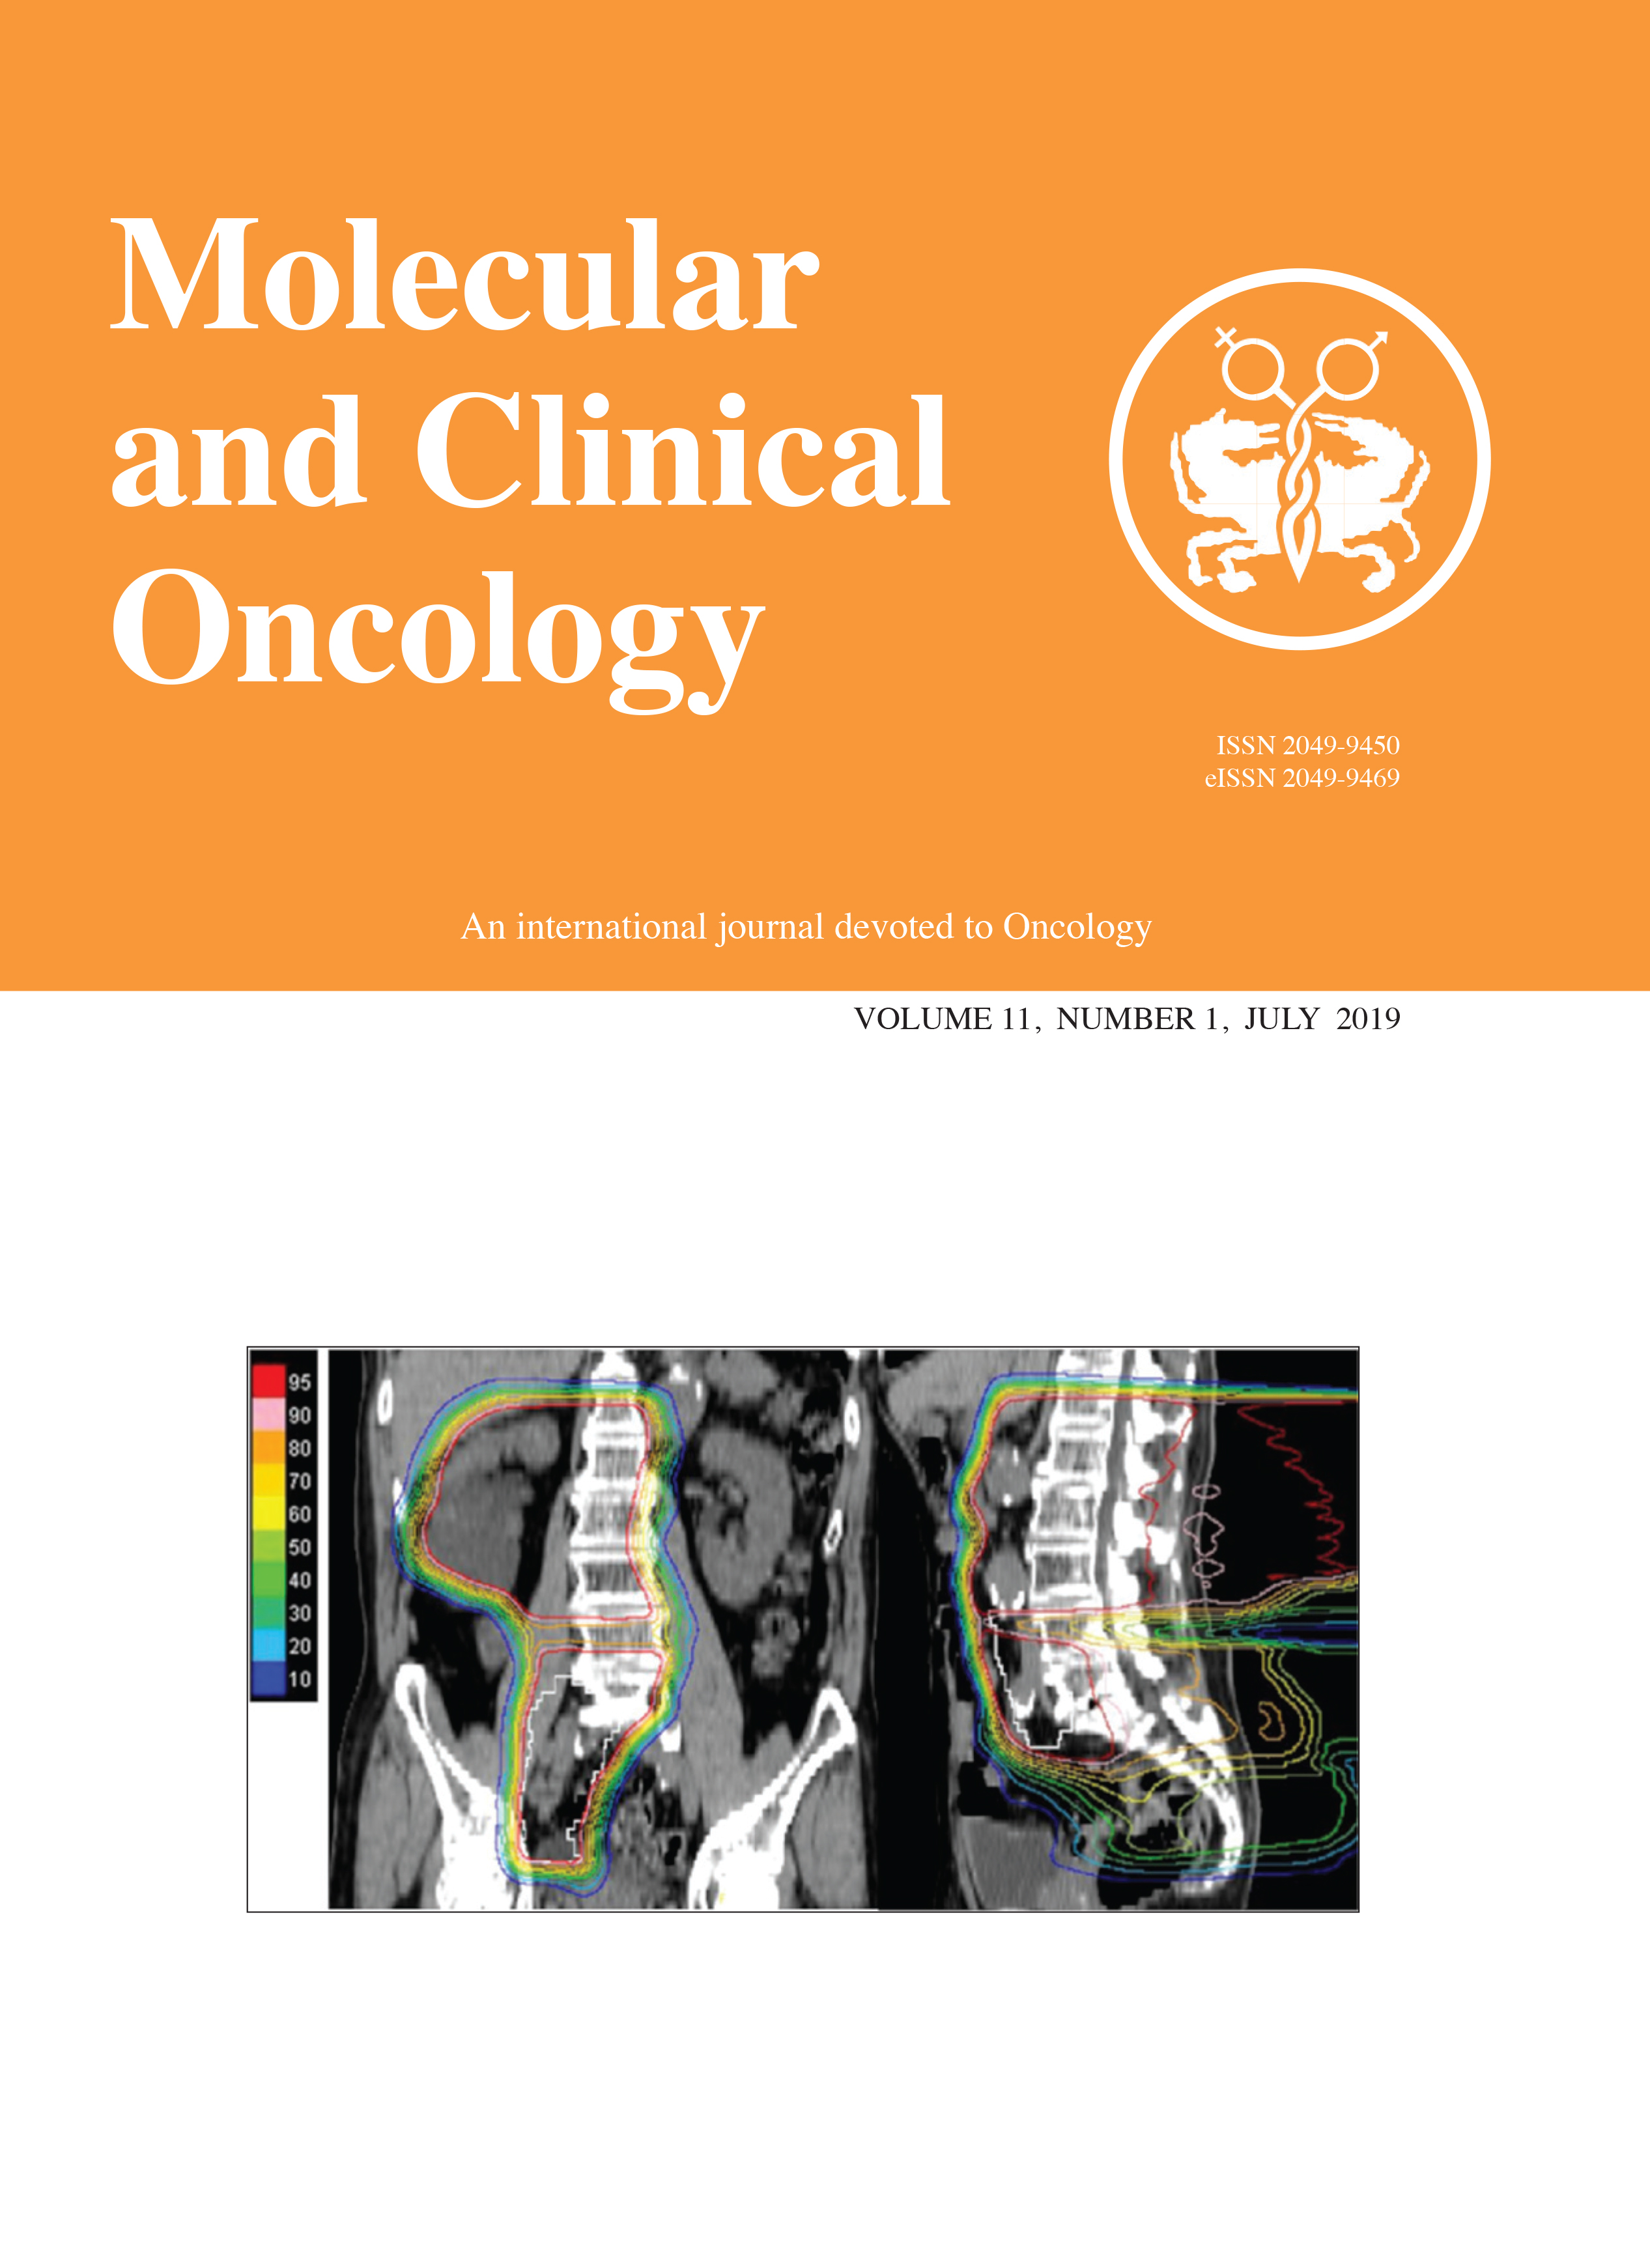 Molecular and Clinical Oncology